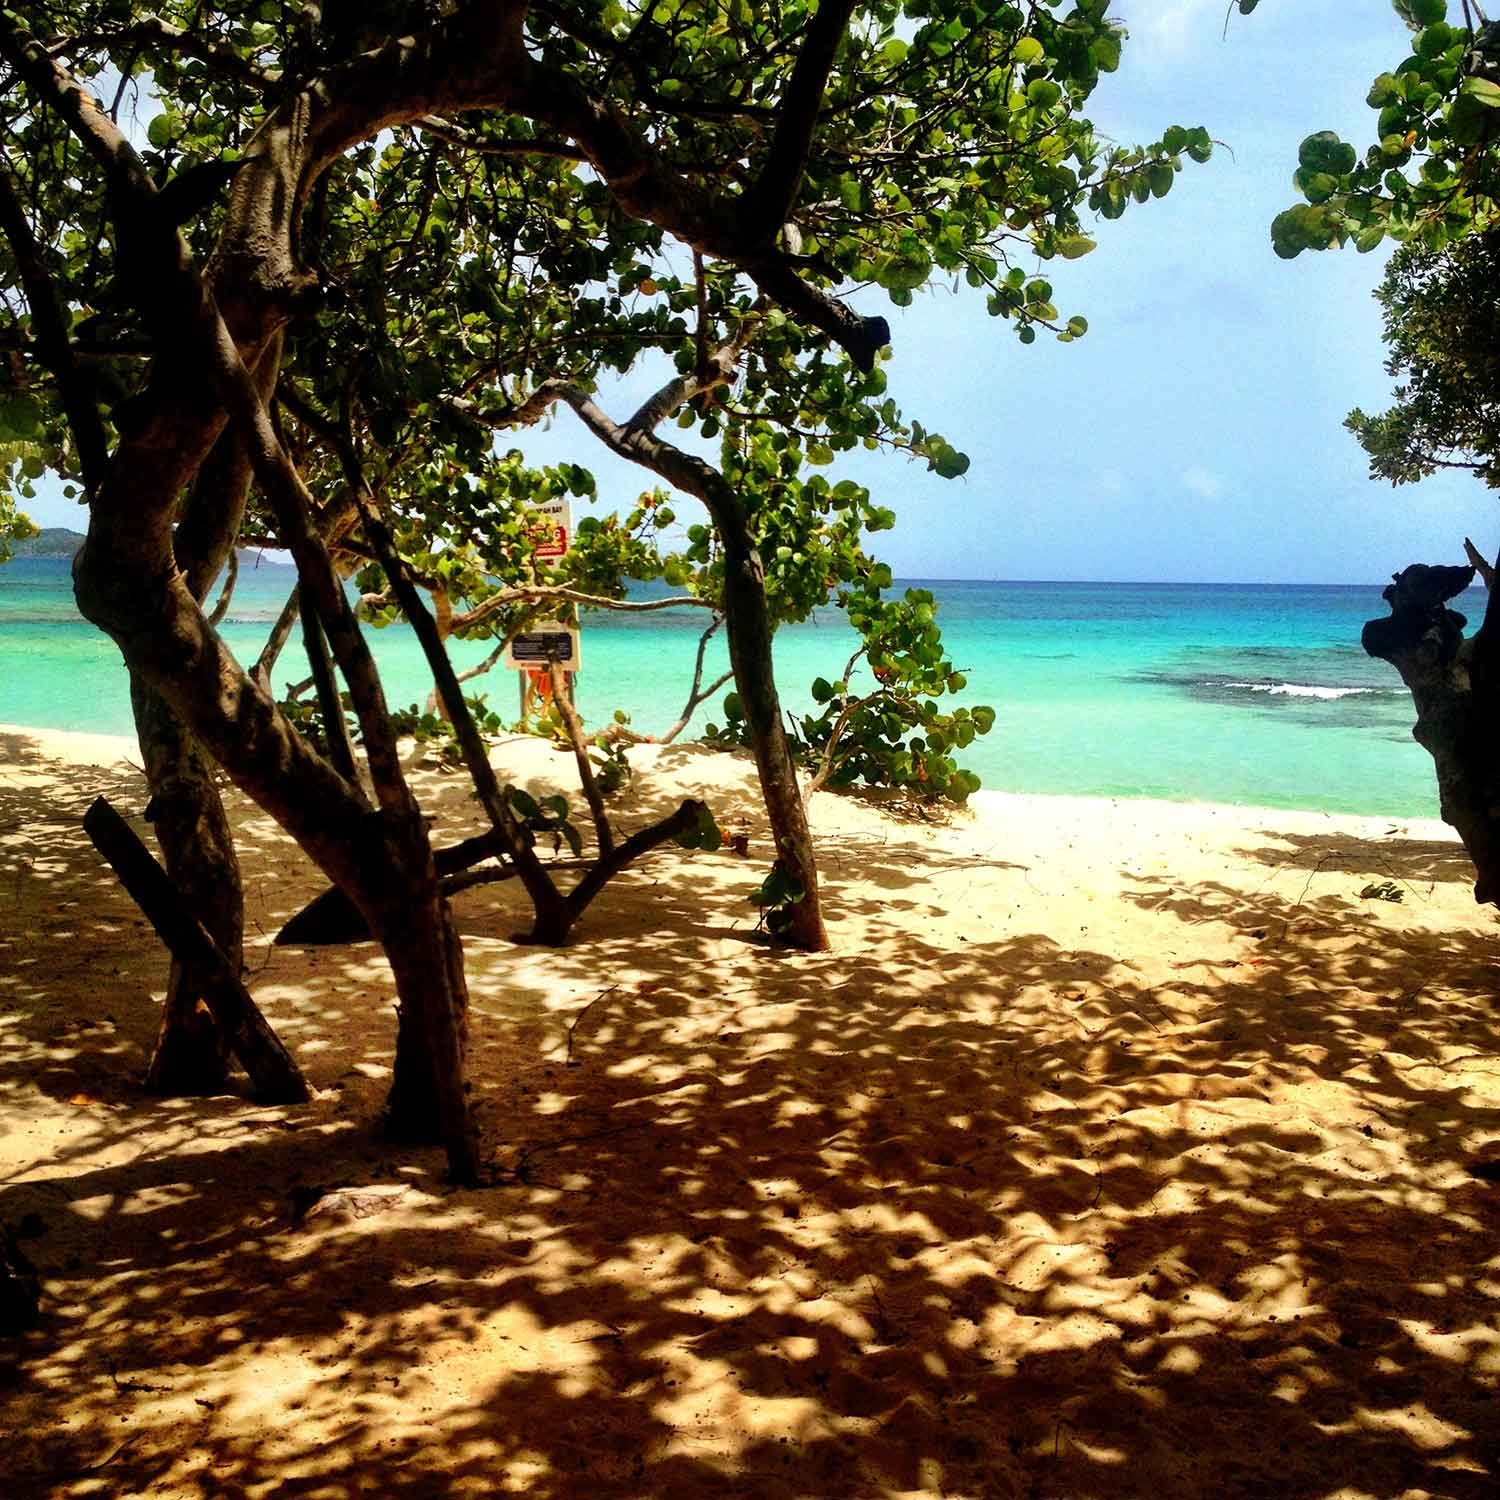 Amongst the shade of the trees on the sand just before the water's edge